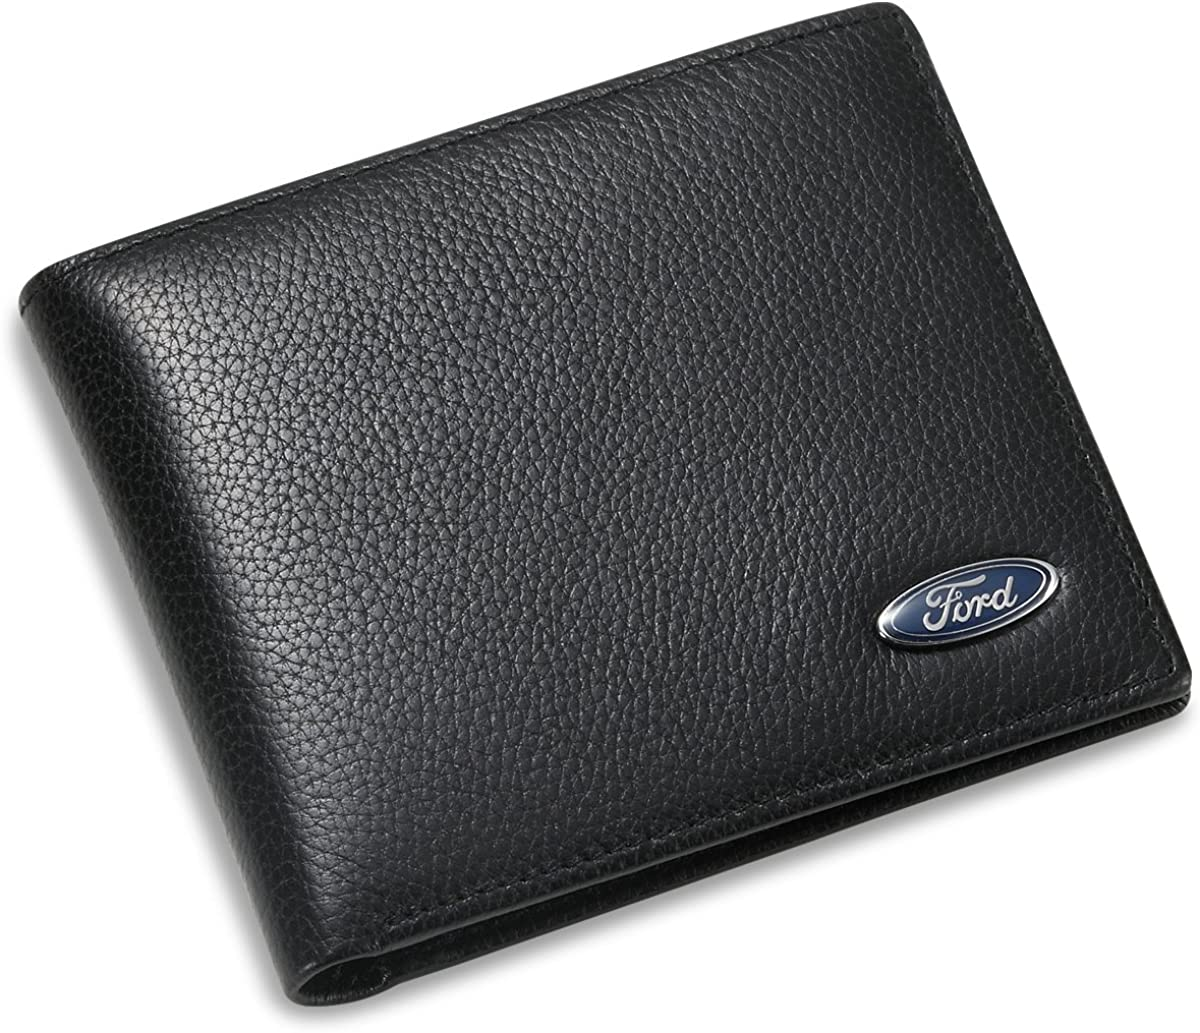 Ford Bifold Wallet with 3 Credit Card Slots and ID Window - Genuine Leather